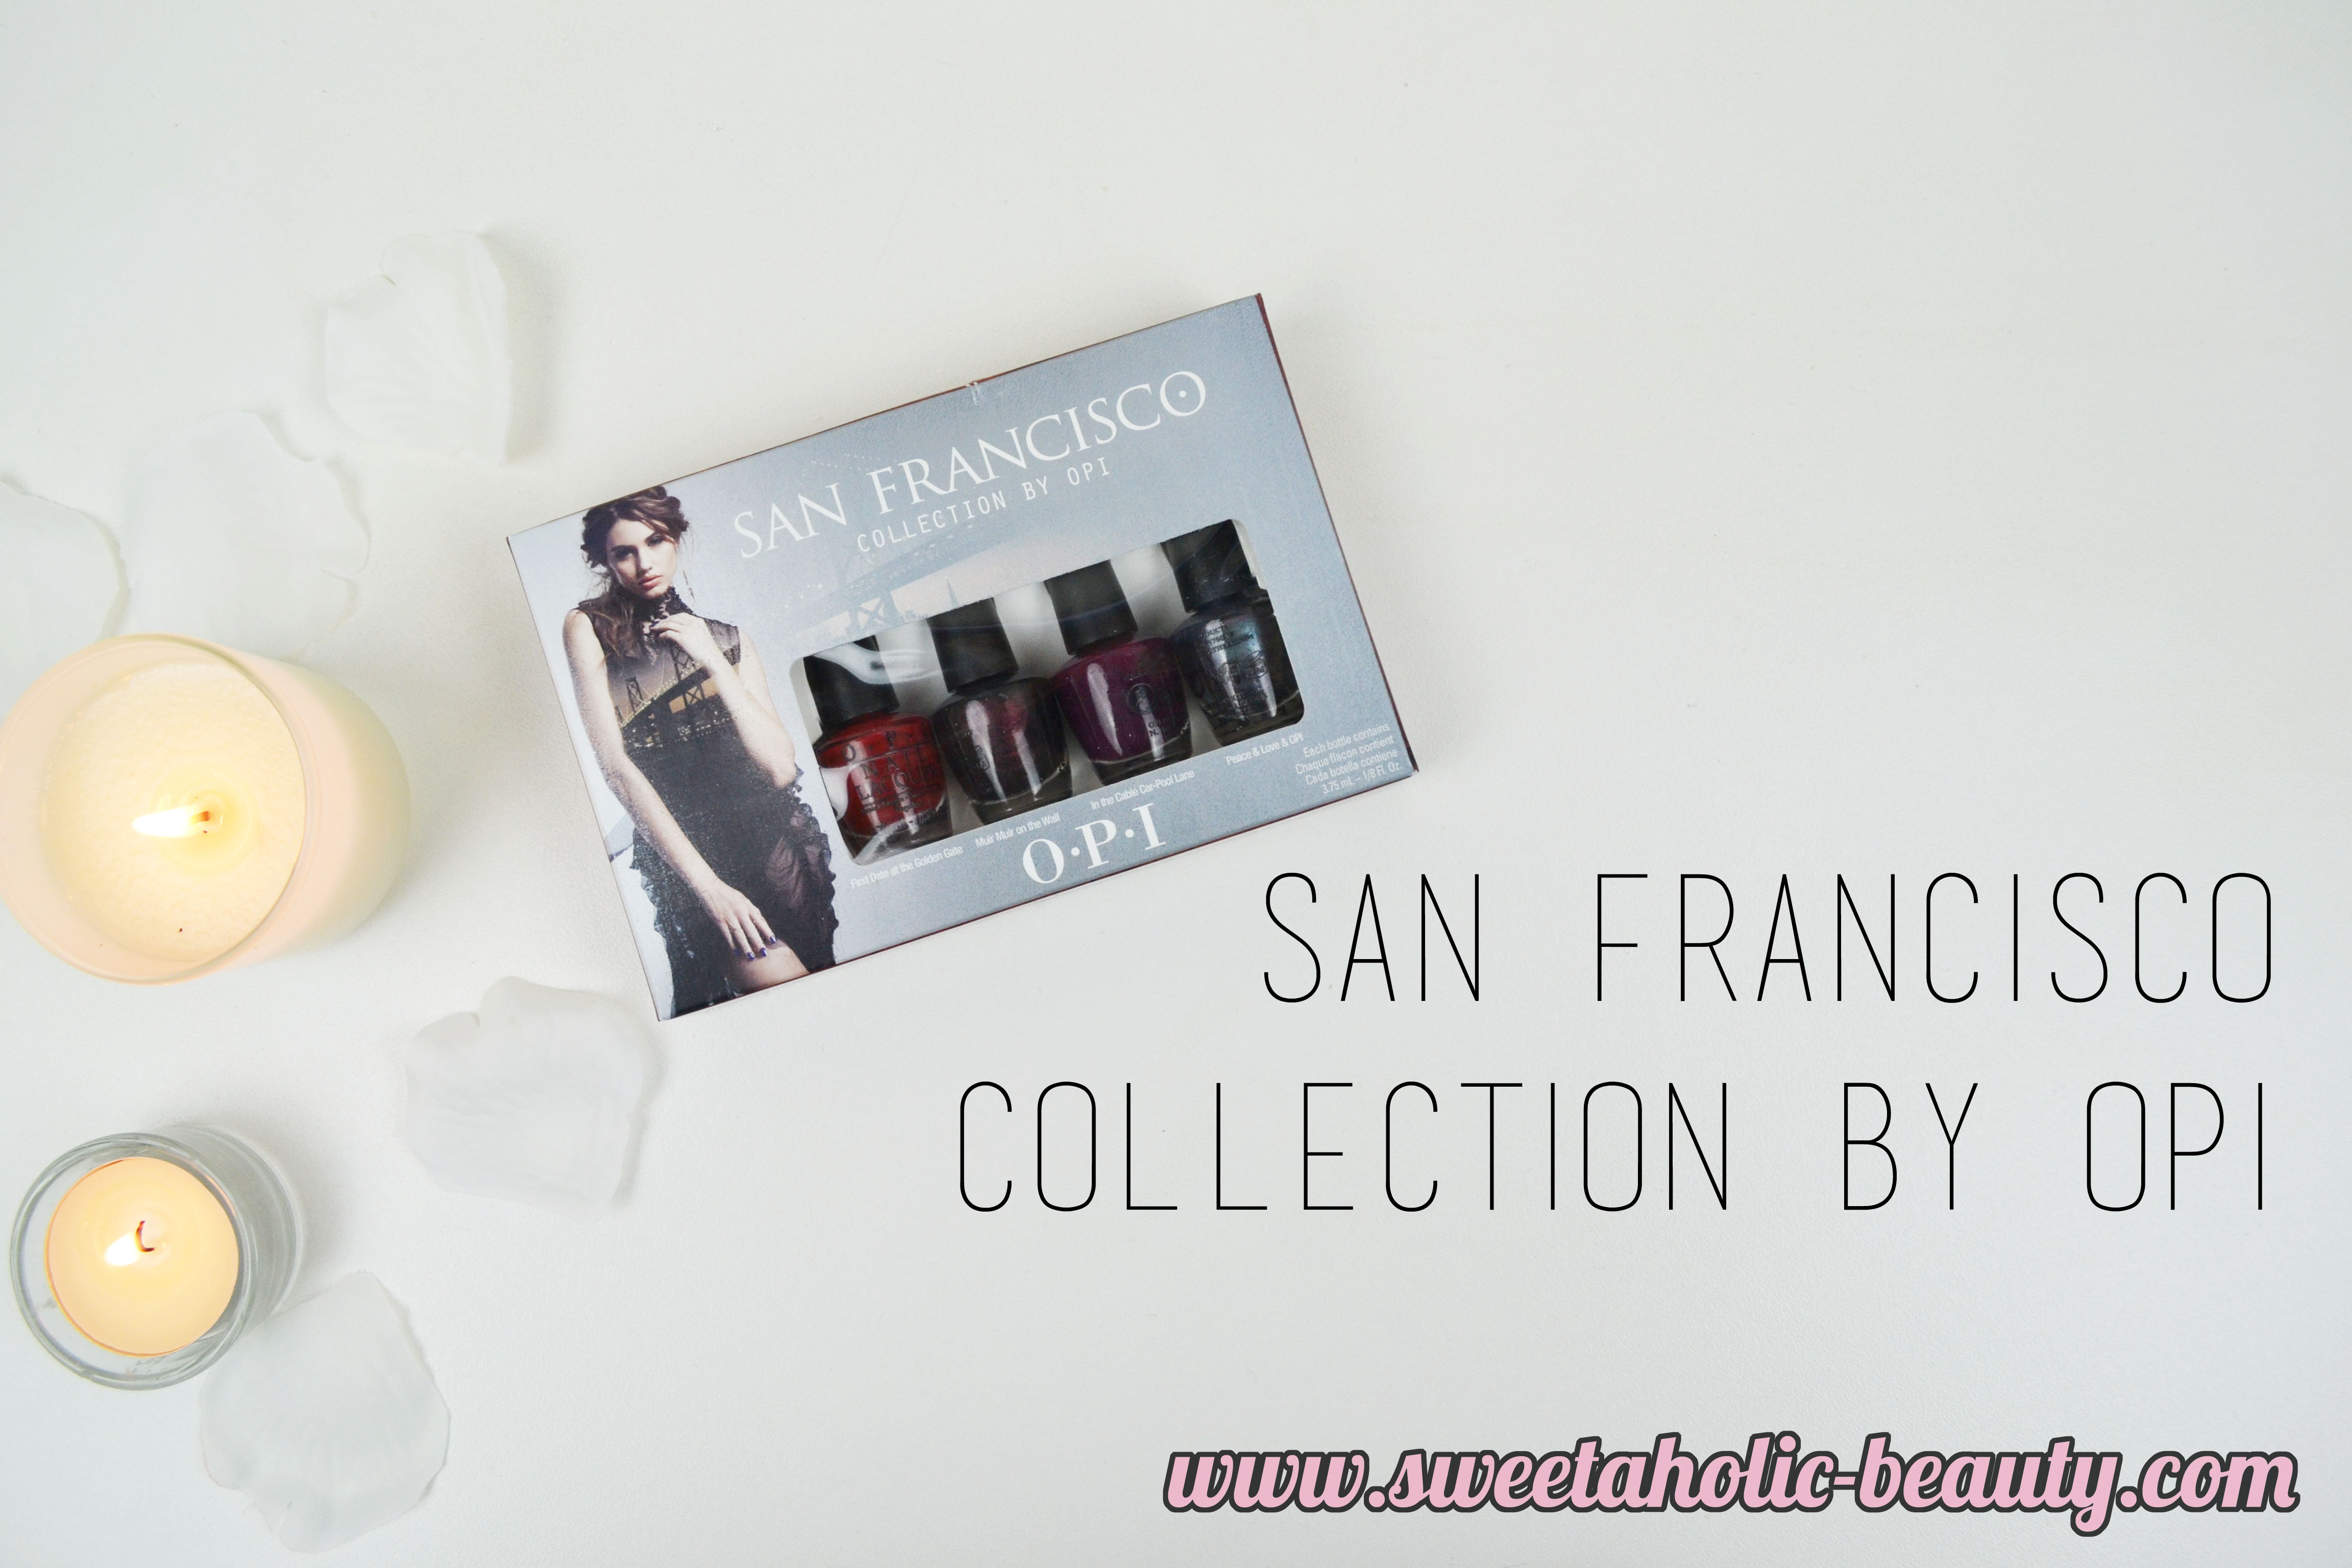 San Francisco Collection by OPI Review & Swatches - Sweetaholic Beauty